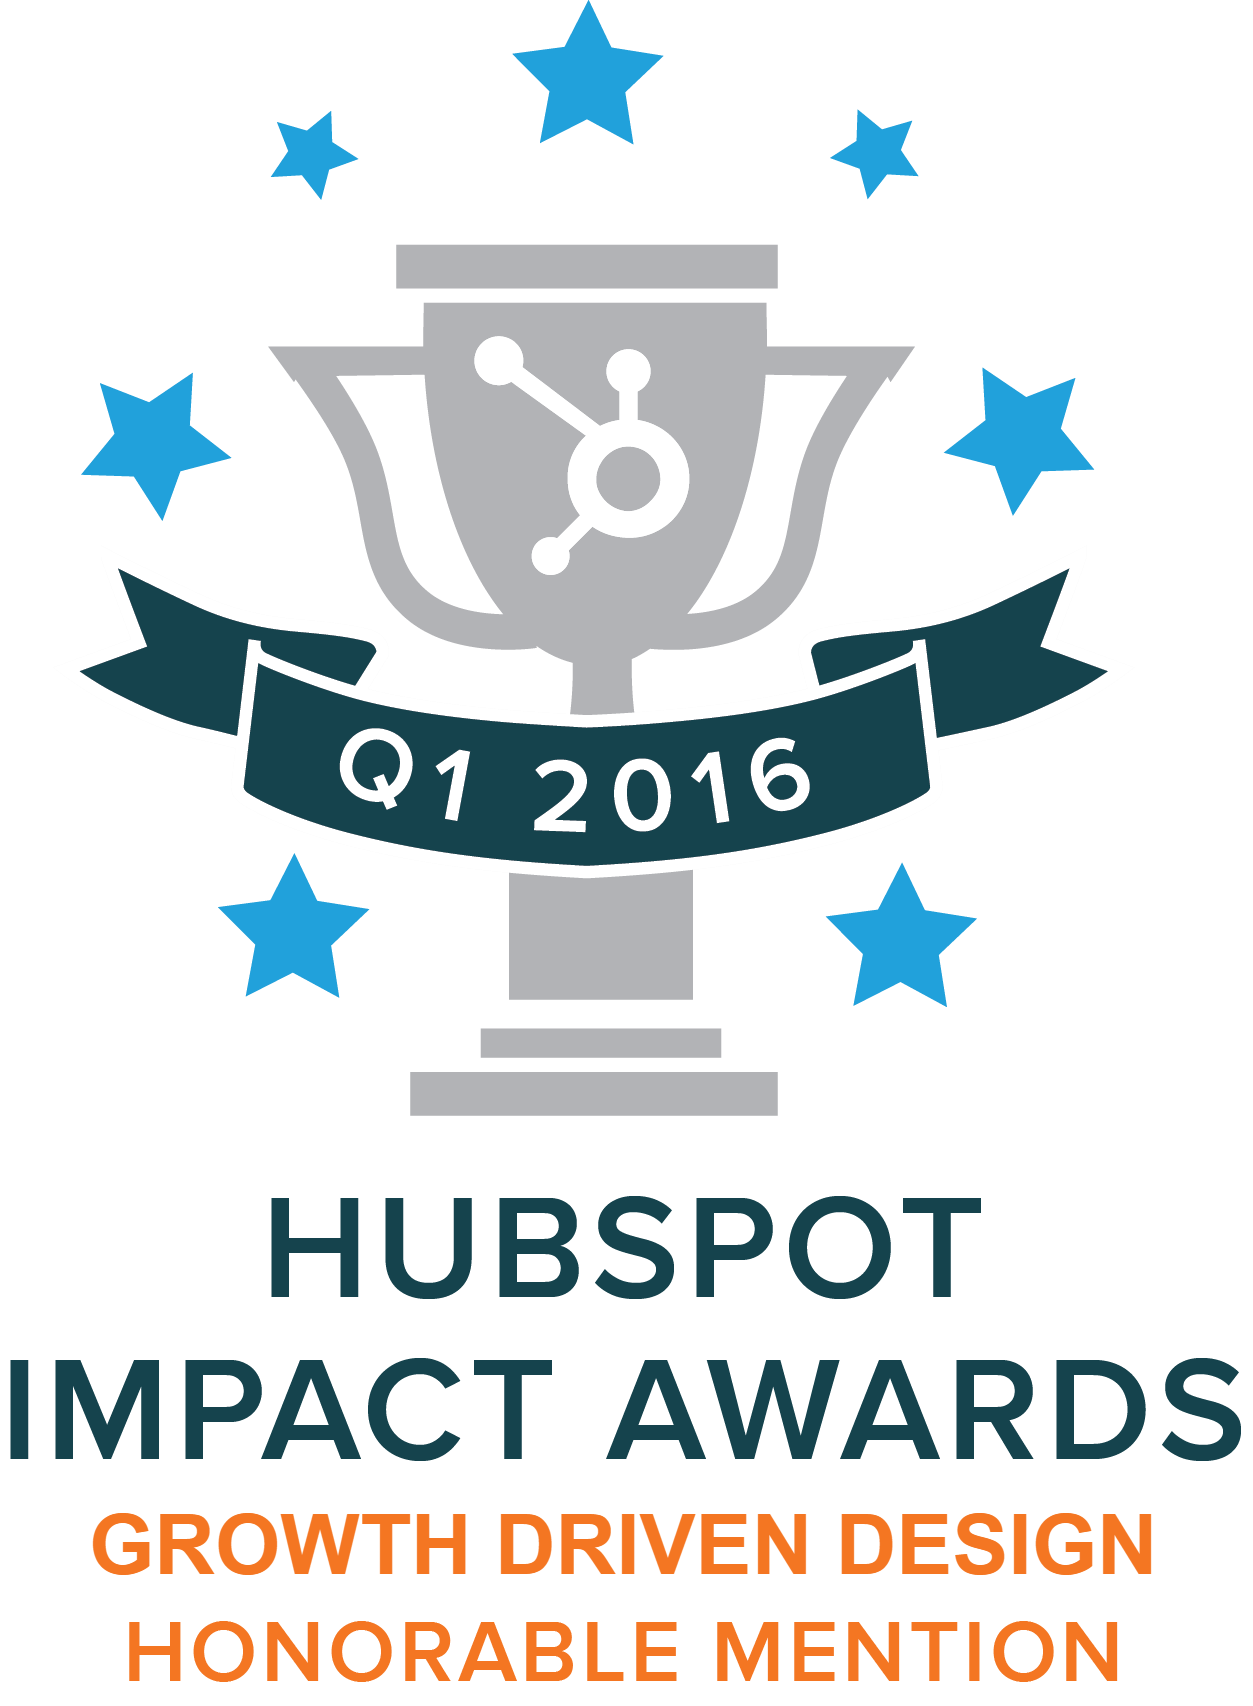 hubspot-impact-awards